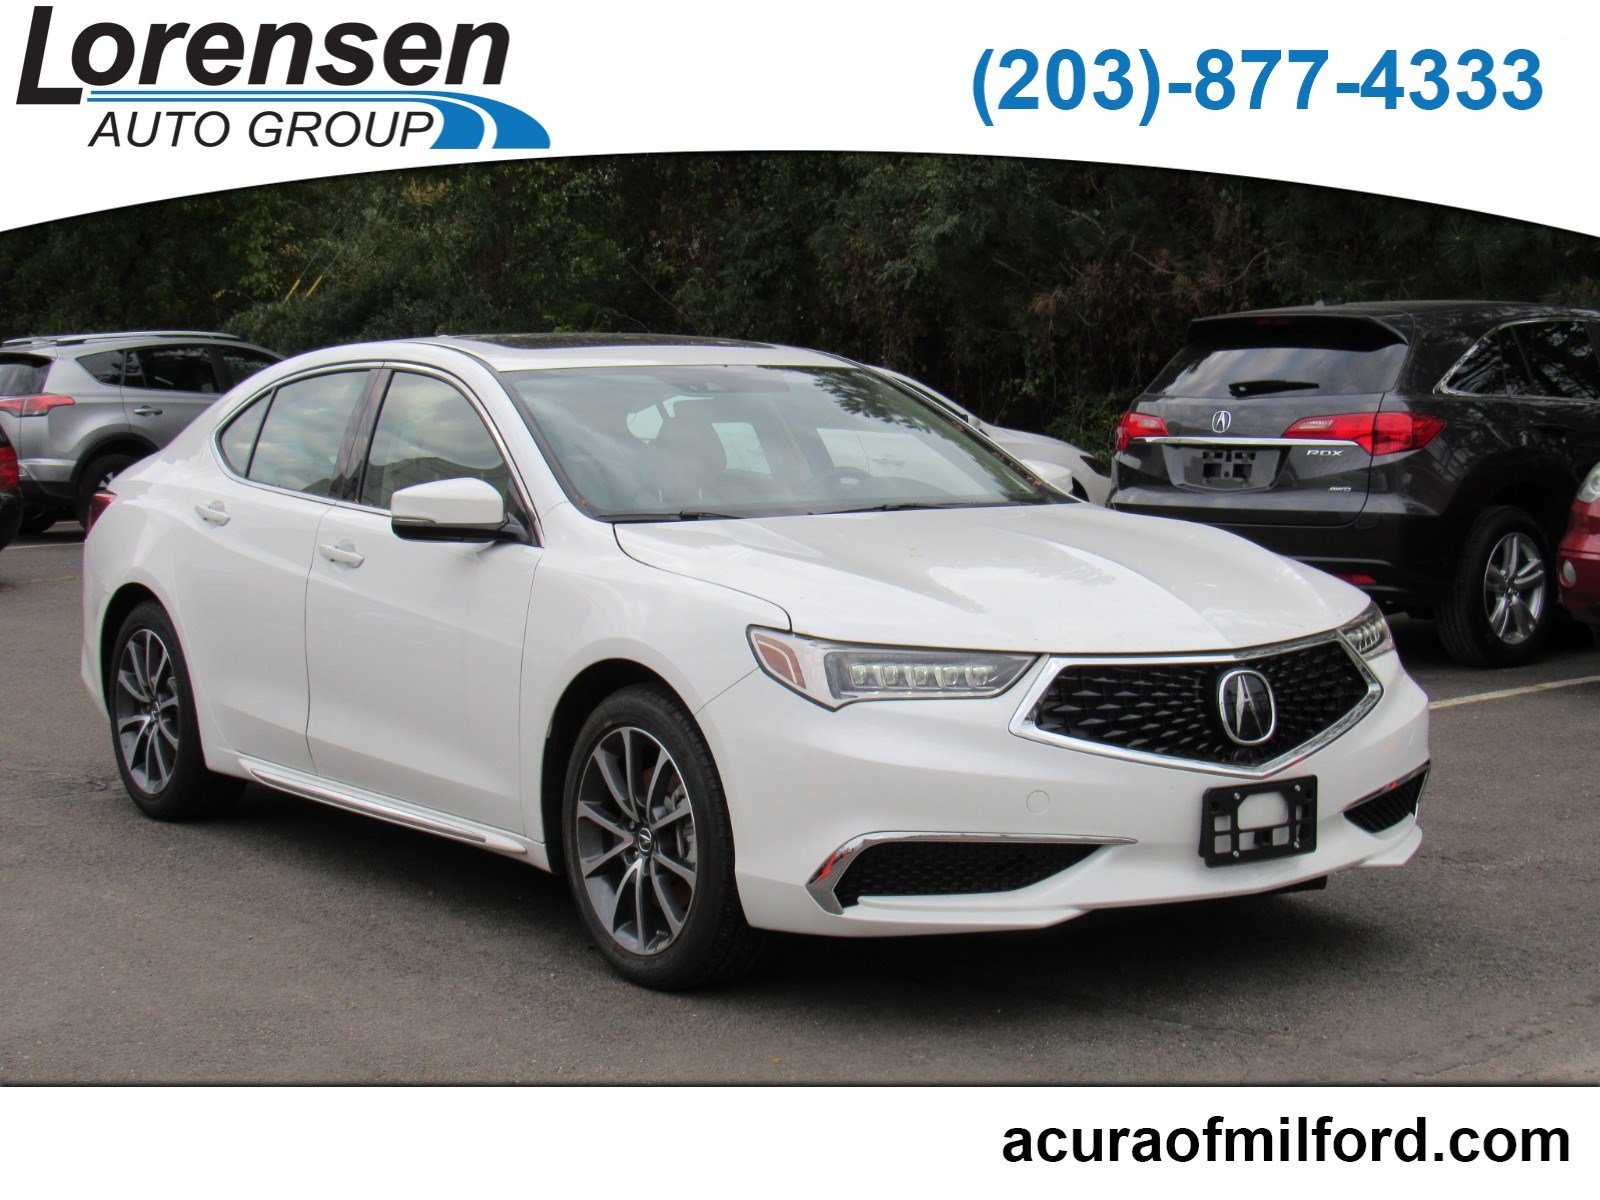 Certified Pre Owned 2018 Acura TLX w Technology Pkg 4dr Car in